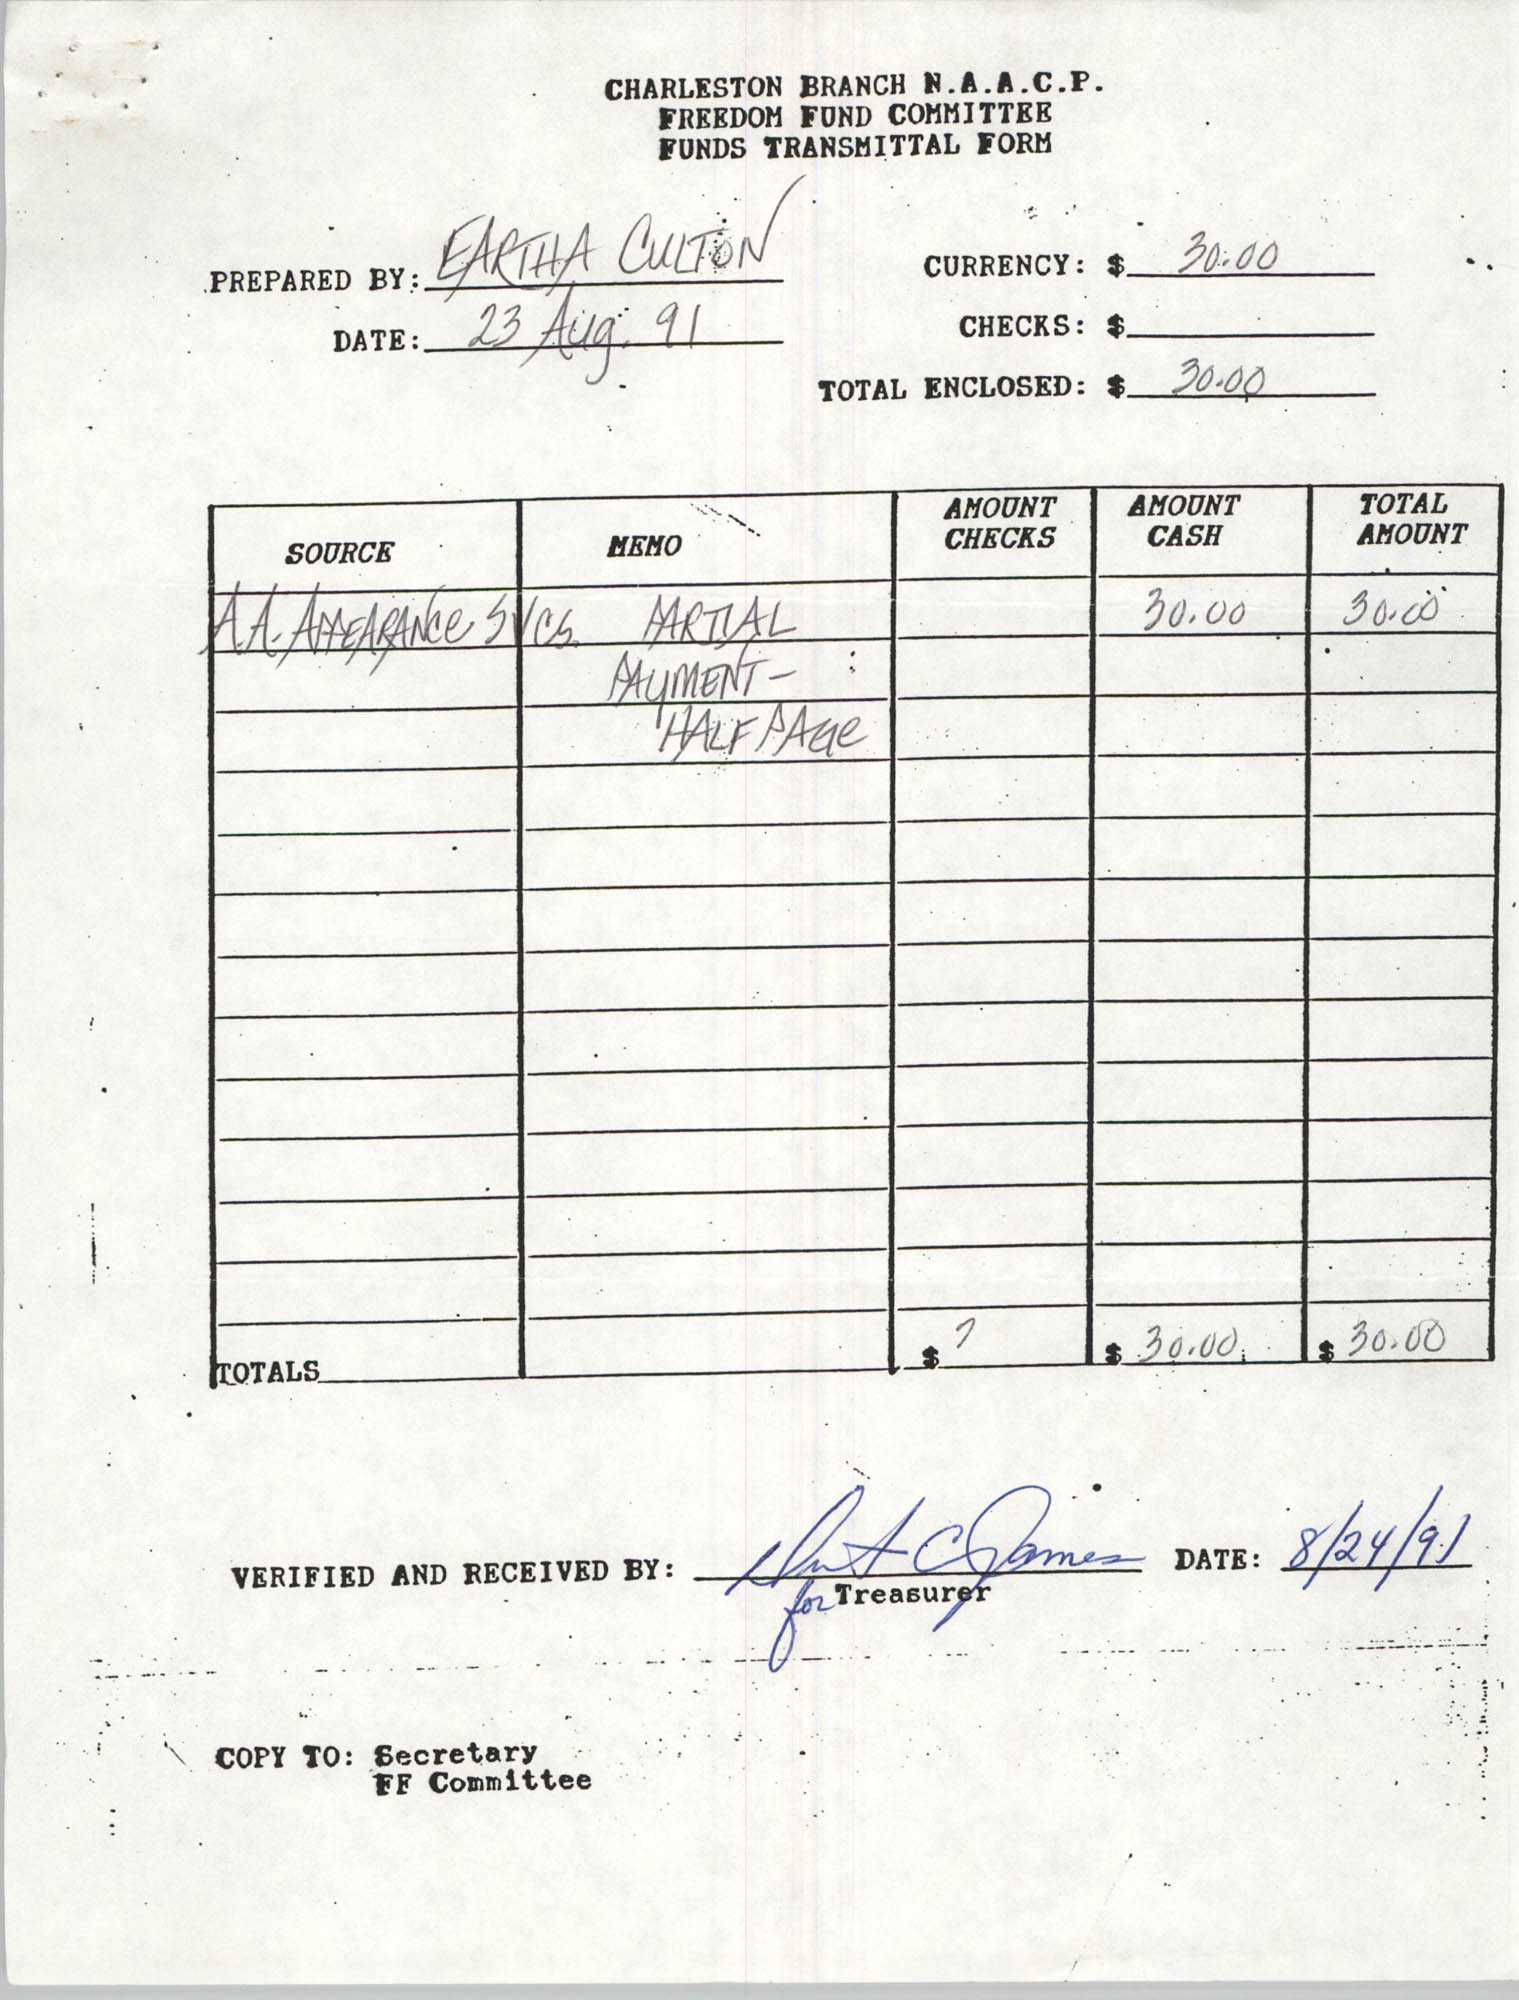 Charleston Branch of the NAACP Funds Transmittal Forms, August 1991, Page 26